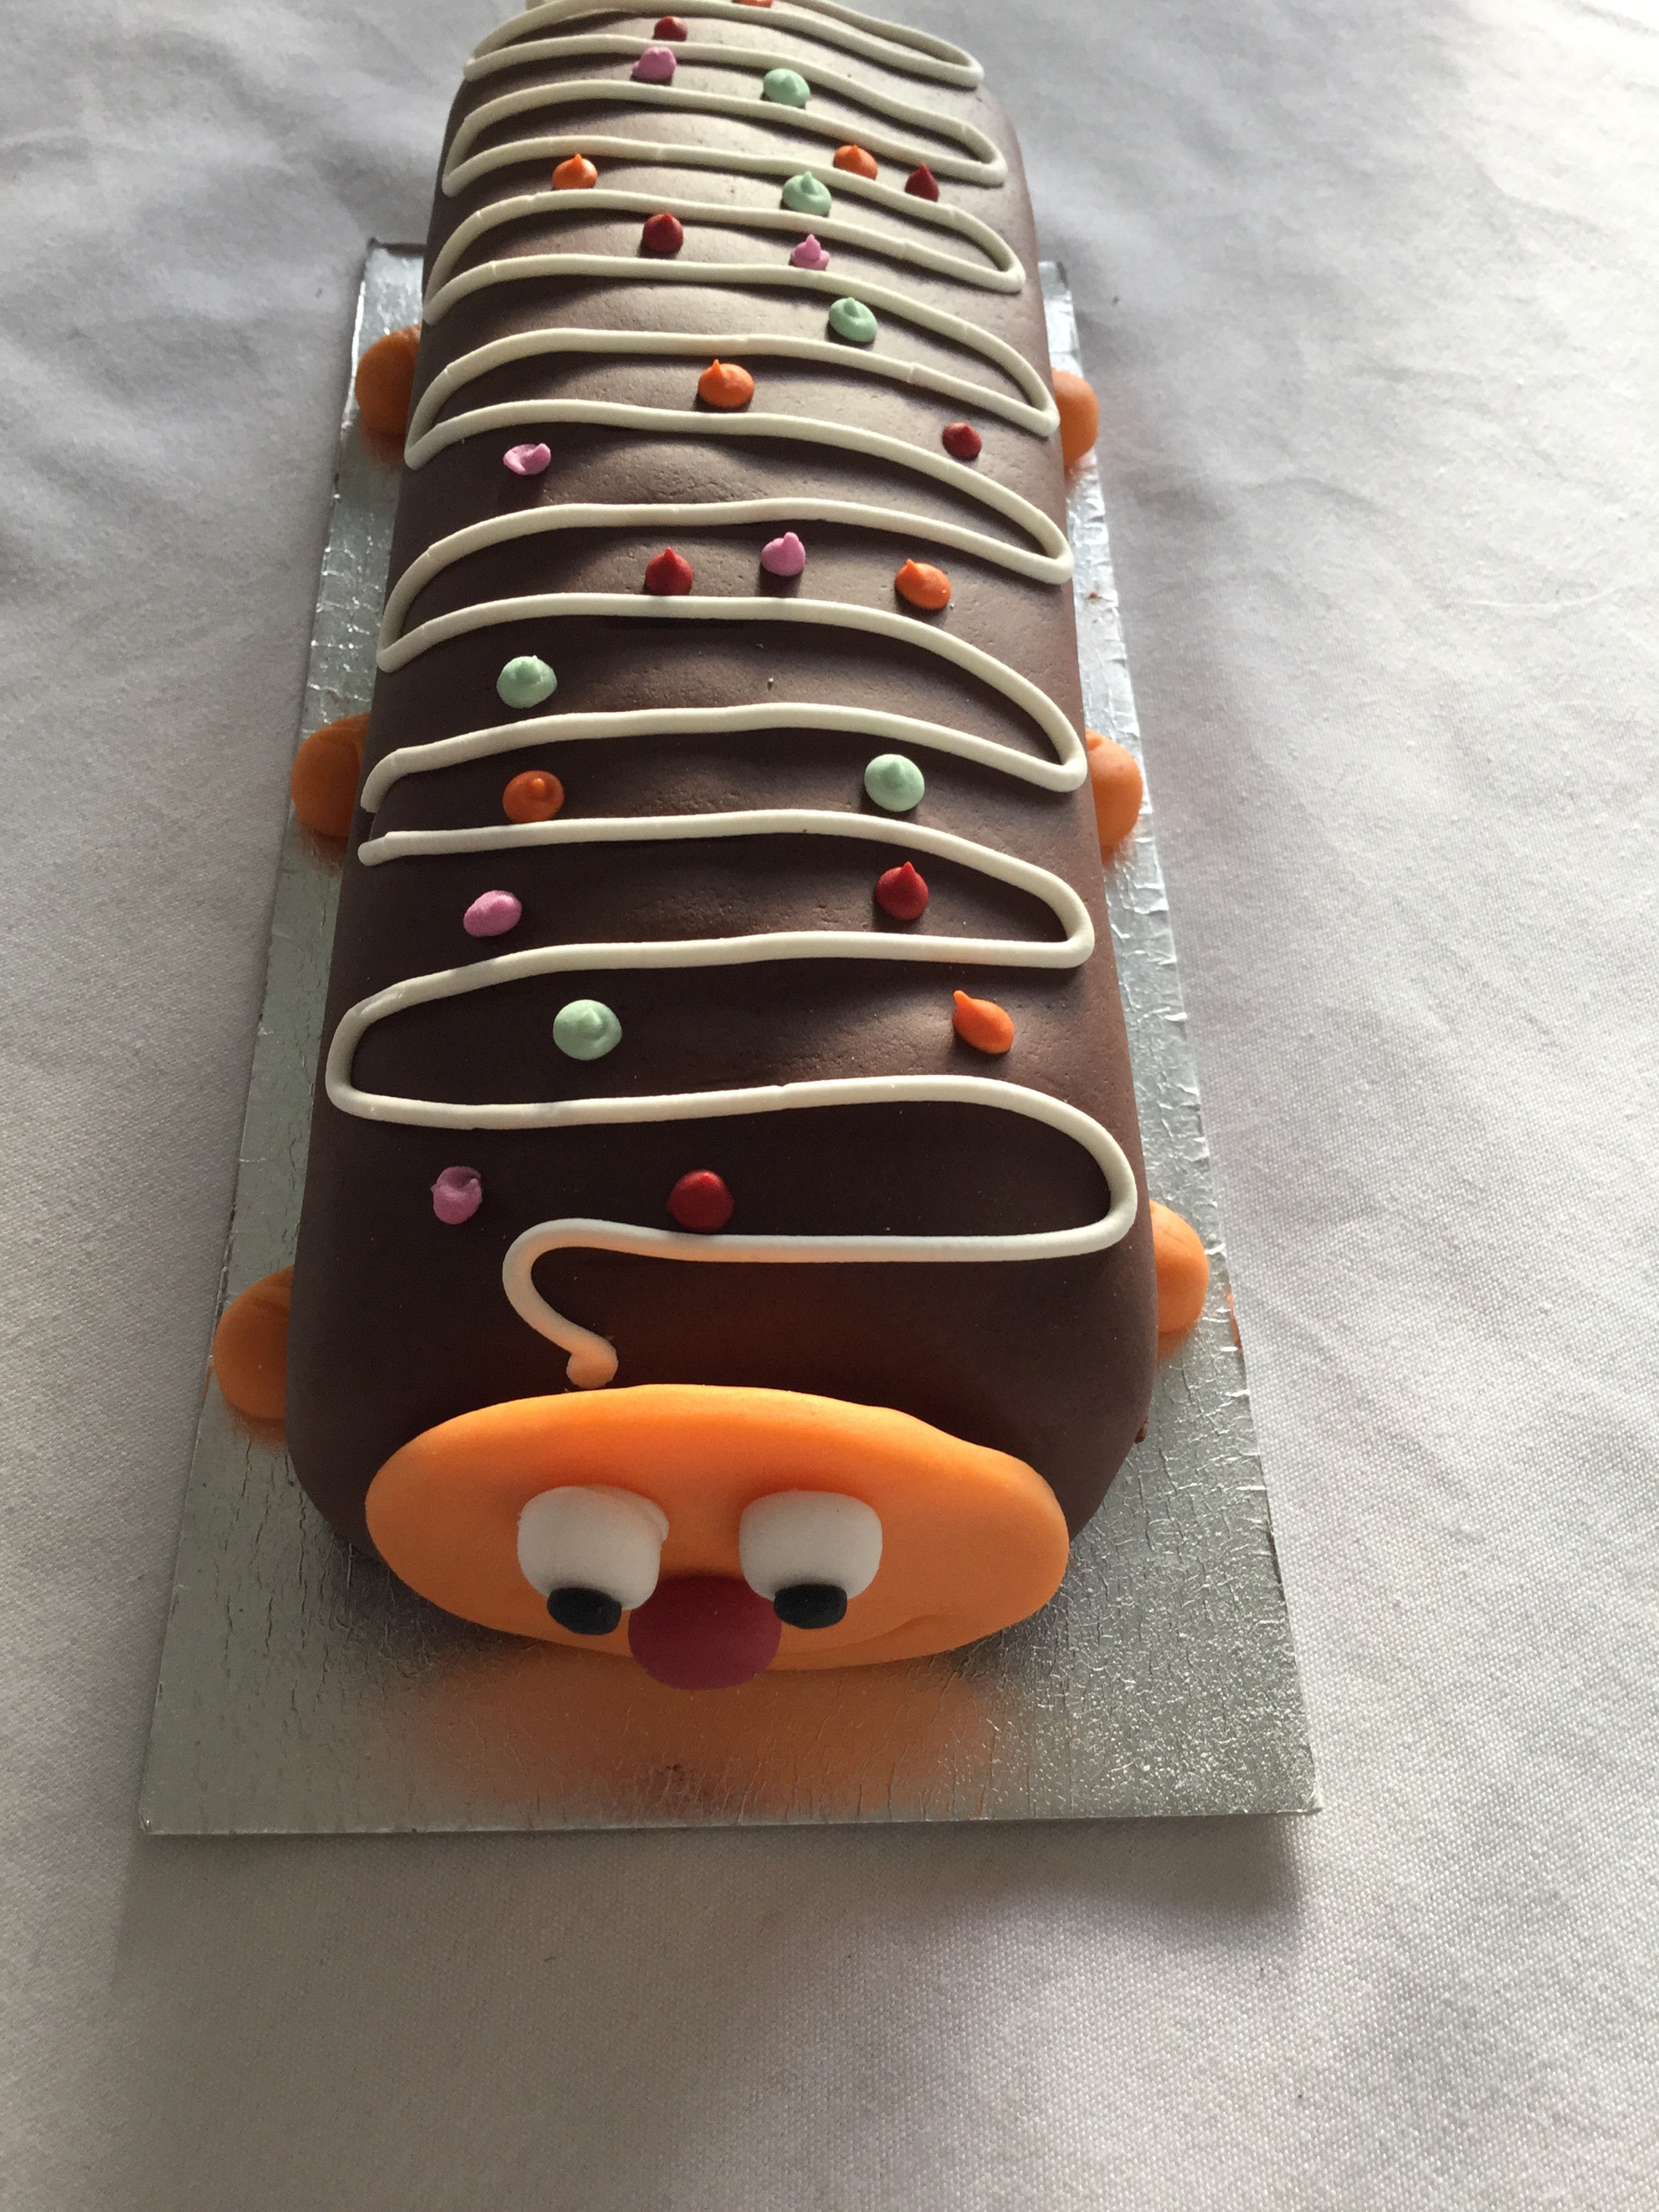 Review Carl The Caterpillar Cake From Tesco Free From